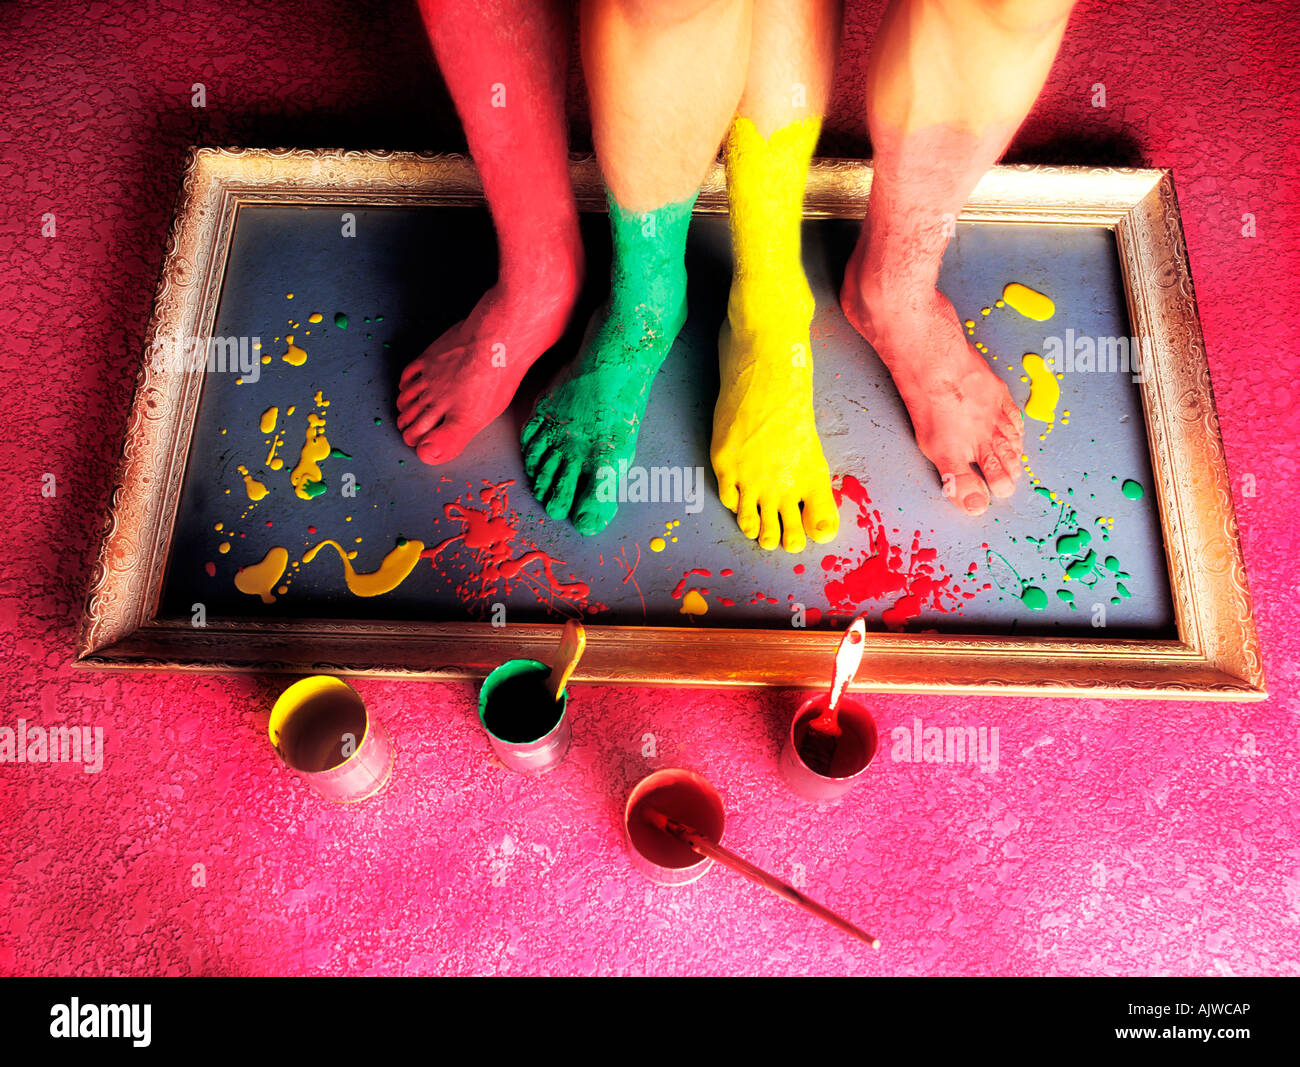 Painted bare feet standing on a picture frame - Stock Image